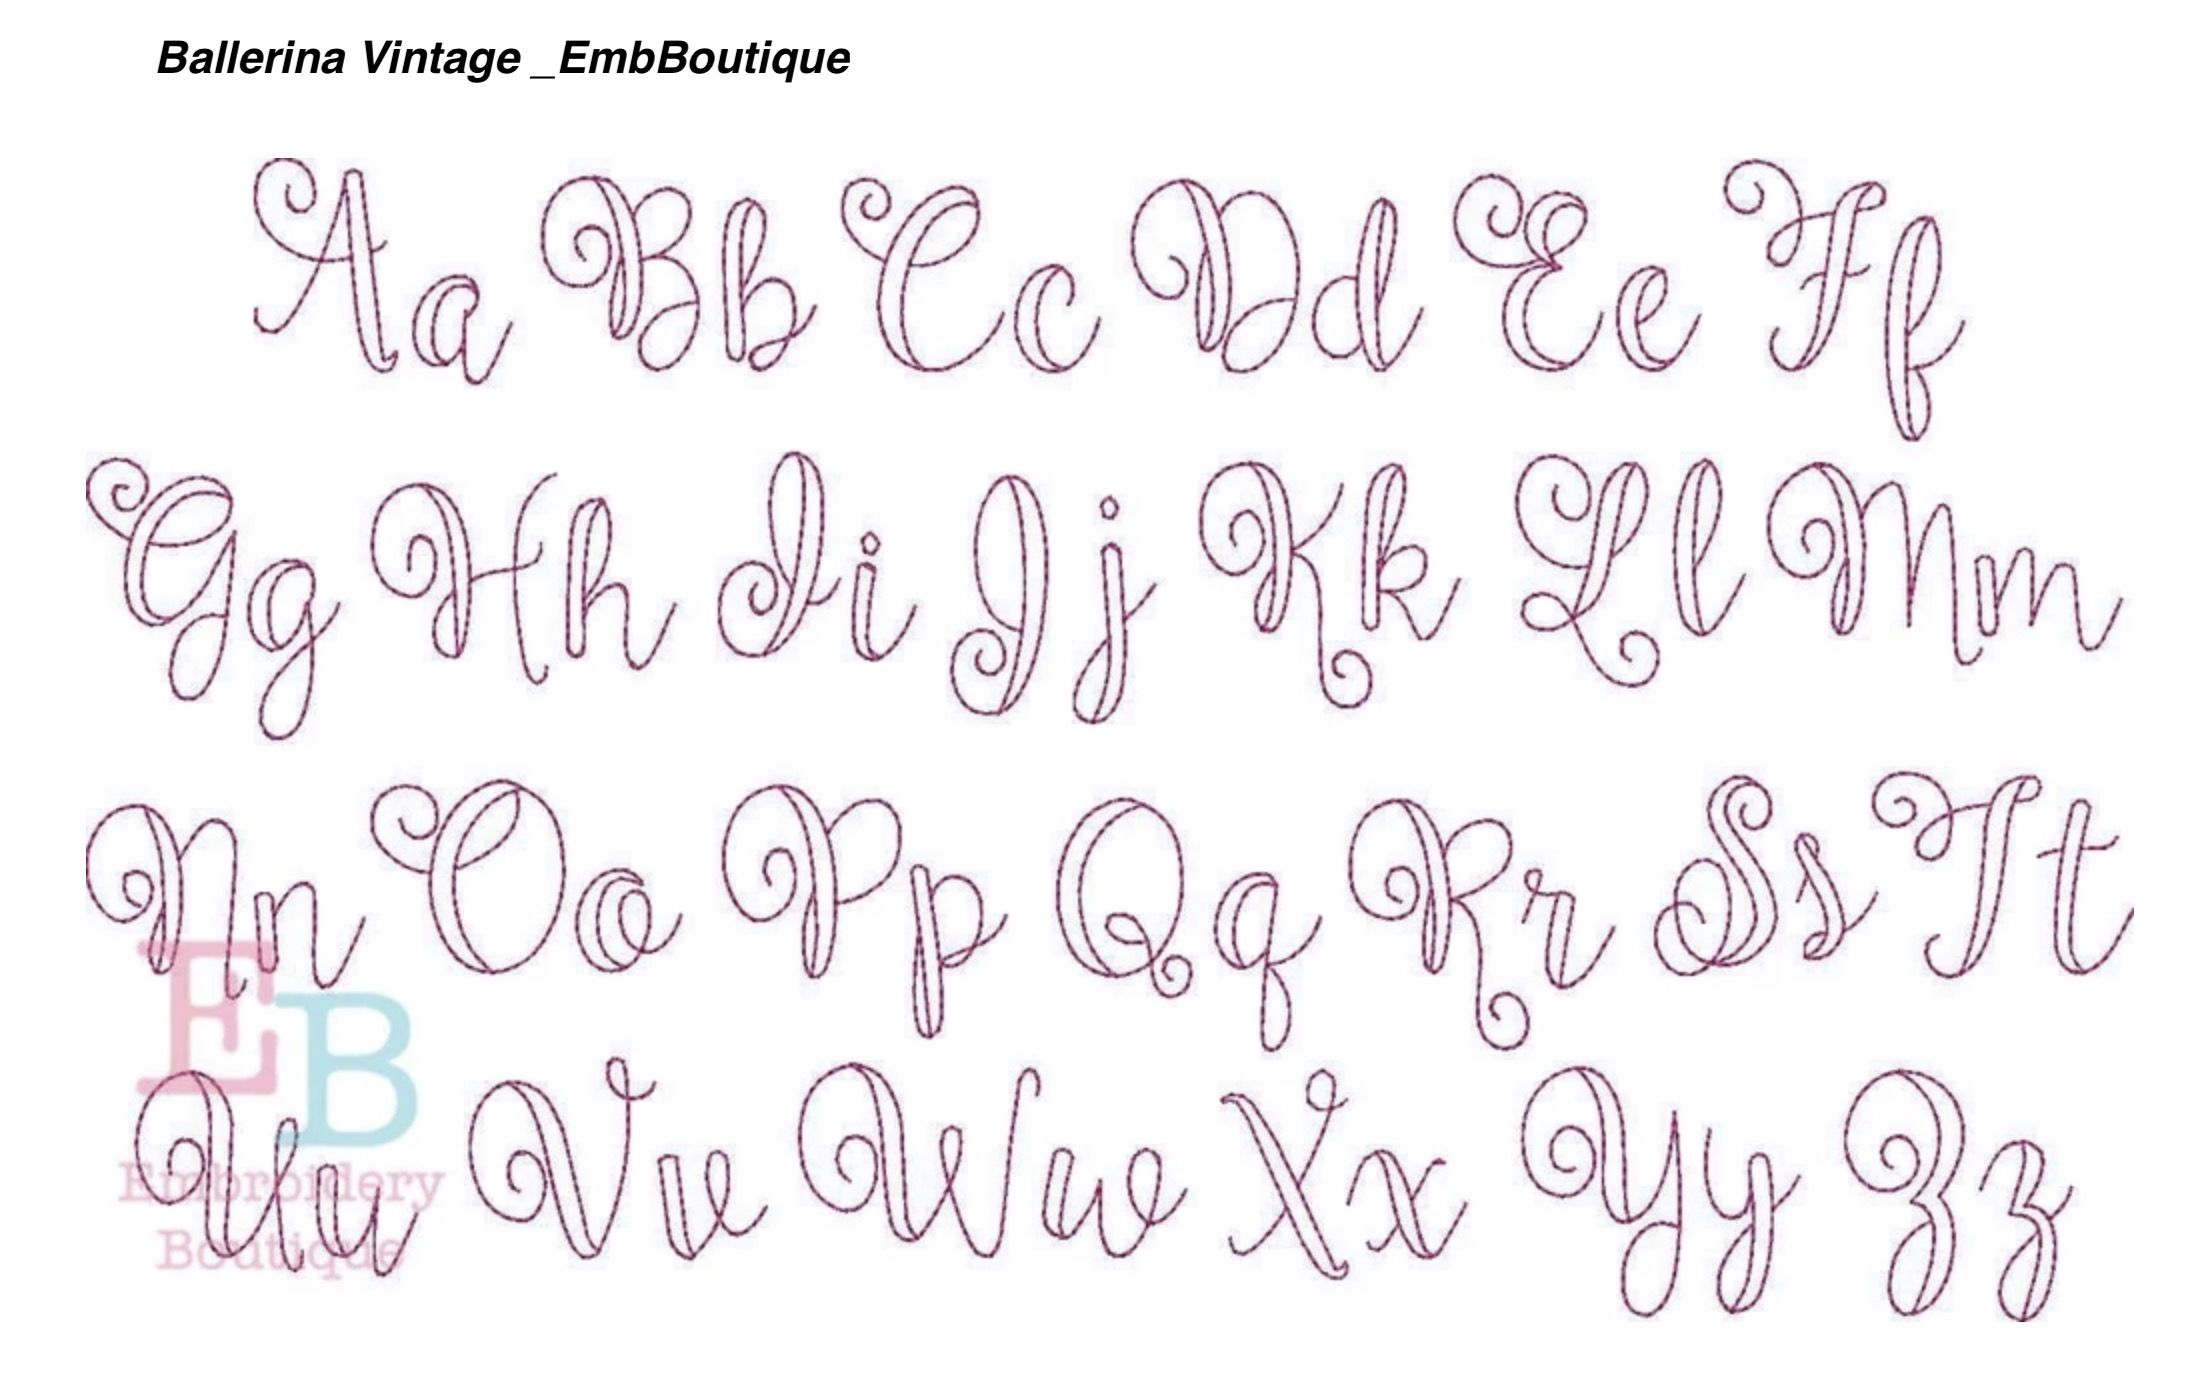 Elegant Floral Initials Embroidery Patterns Vintage Embroidery Monogram Embroidery Fonts